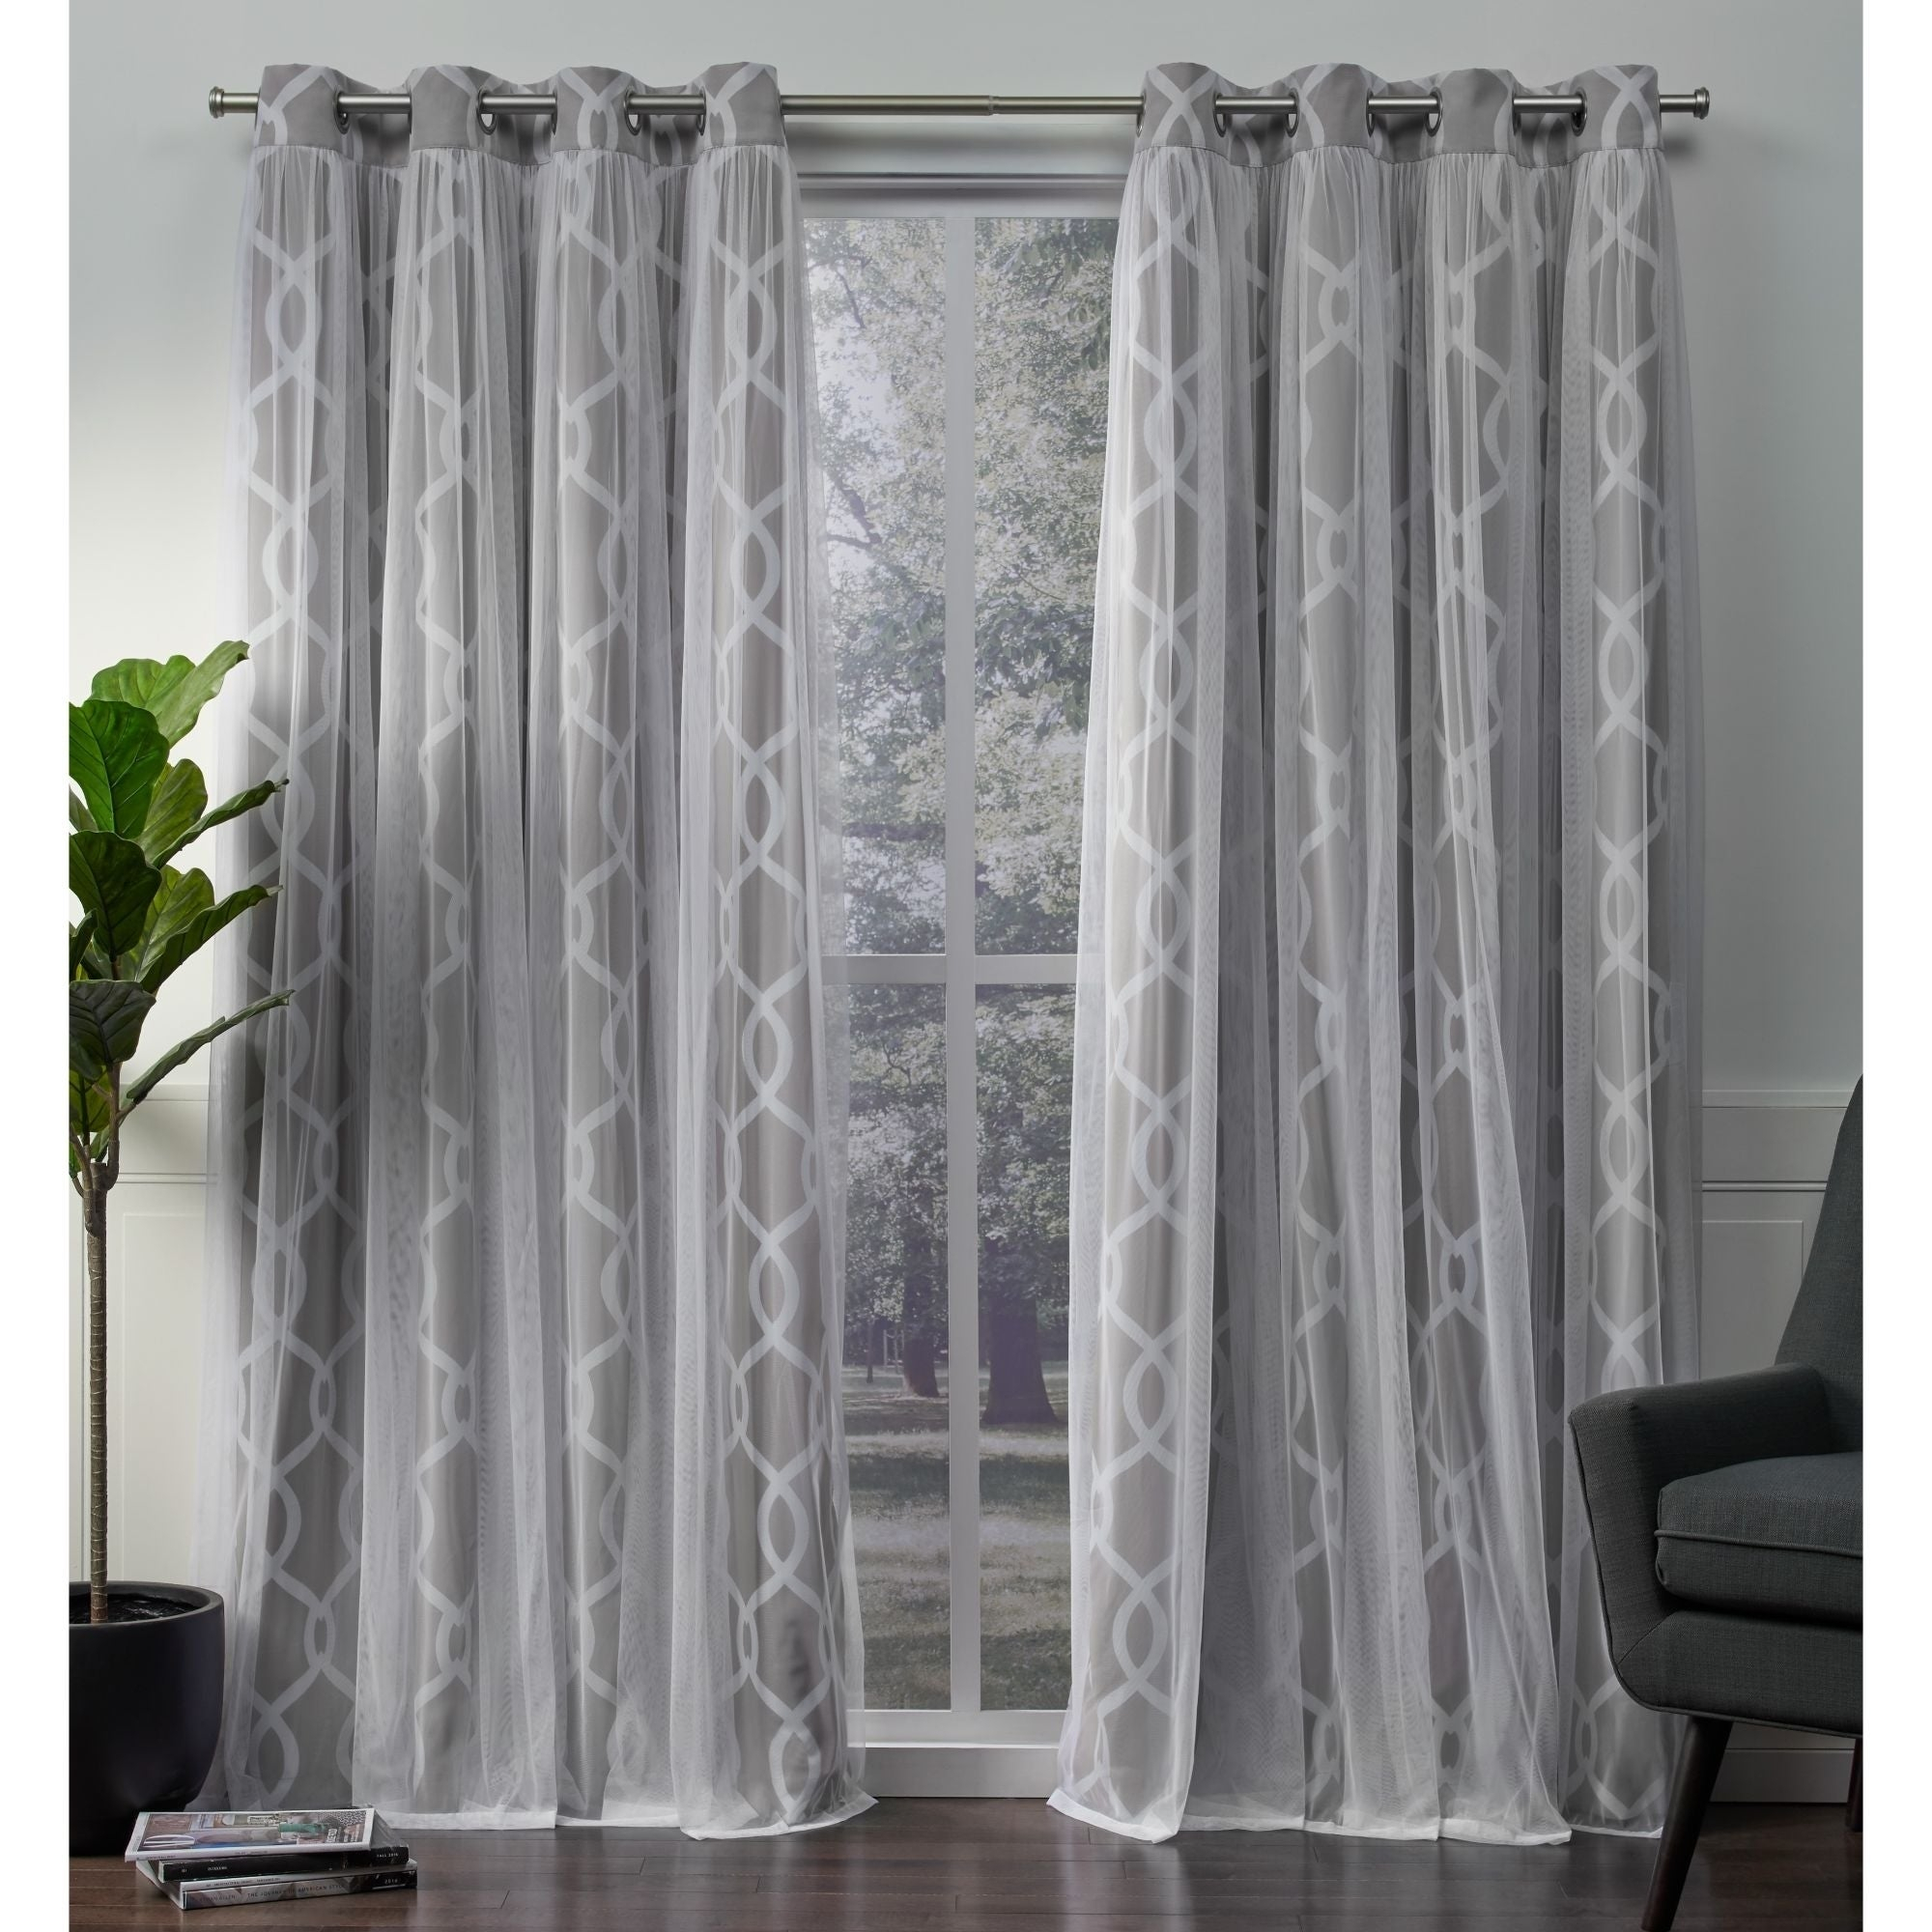 Ati Home Carmela Thermal Woven Blackout Grommet Top Curtain Panel Pair Intended For Thermal Woven Blackout Grommet Top Curtain Panel Pairs (View 4 of 30)